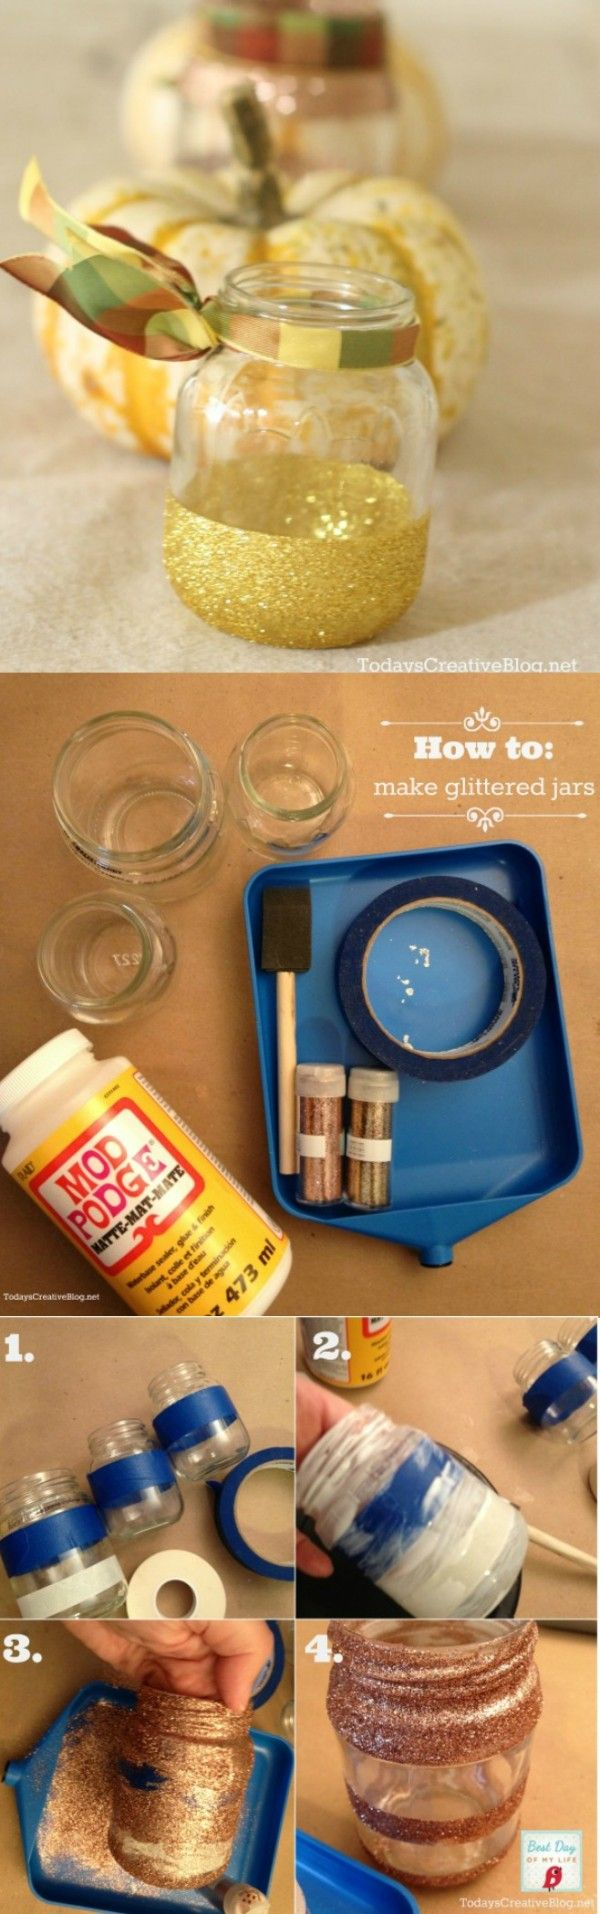 DIY Glittered Jars | Fall Decor | Fall Table Decor | TodaysCreativeBlog.net